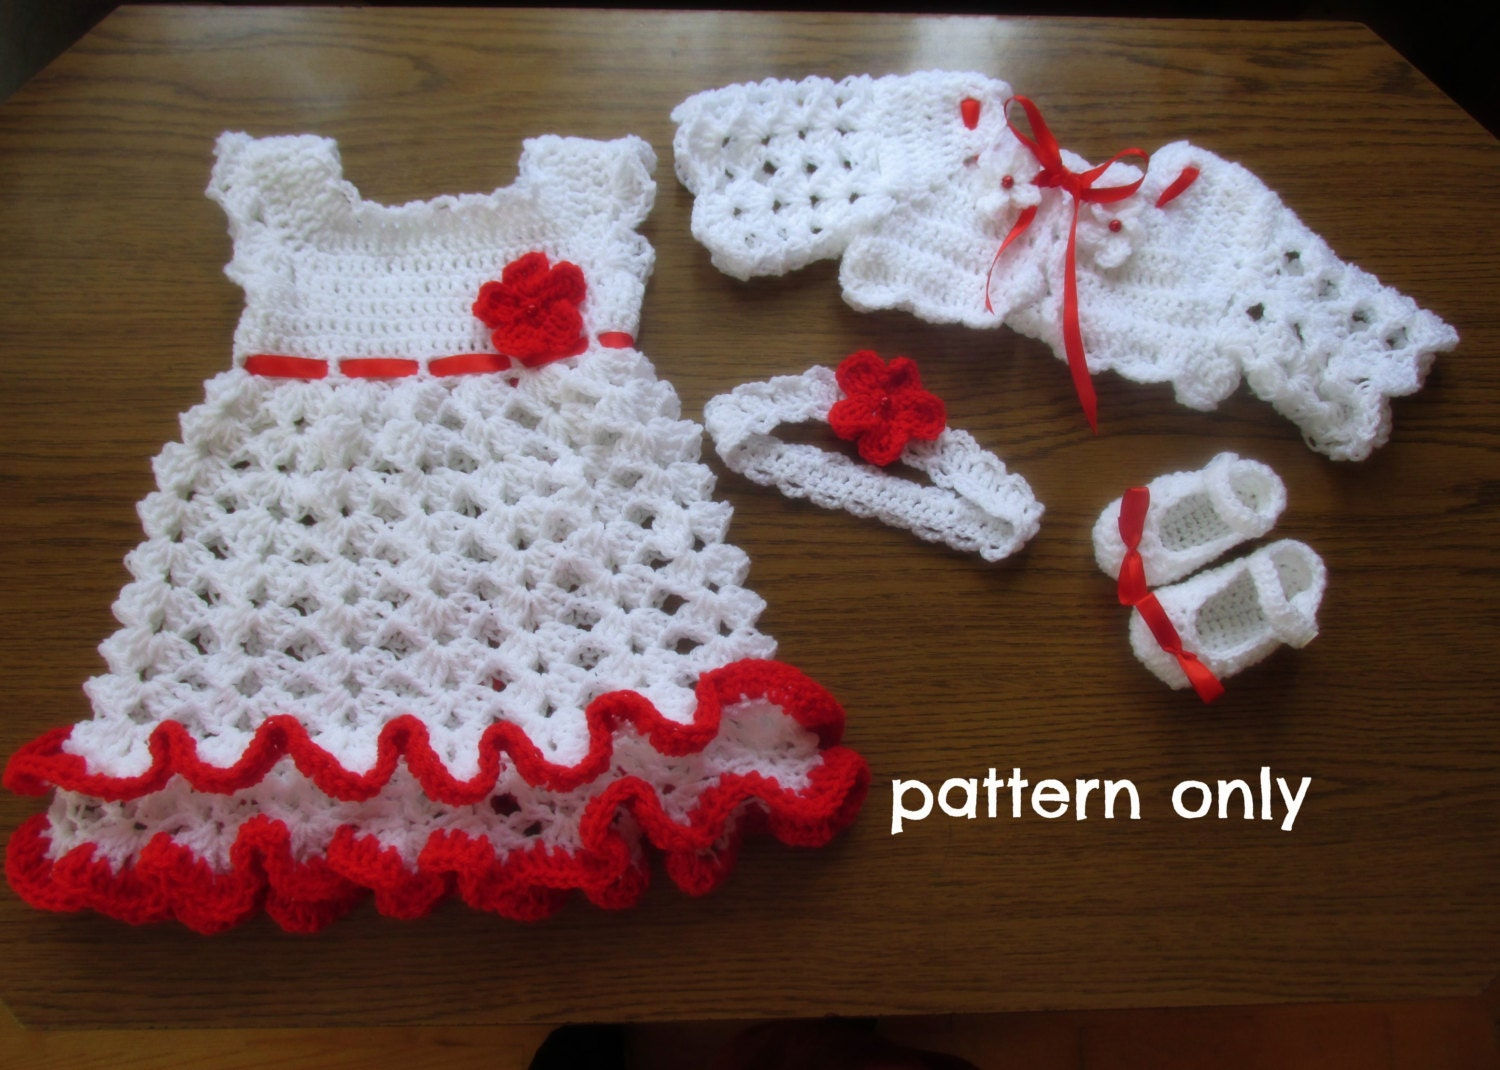 Crochet patterns crochet pattern baby patterns for babies zoom bankloansurffo Choice Image